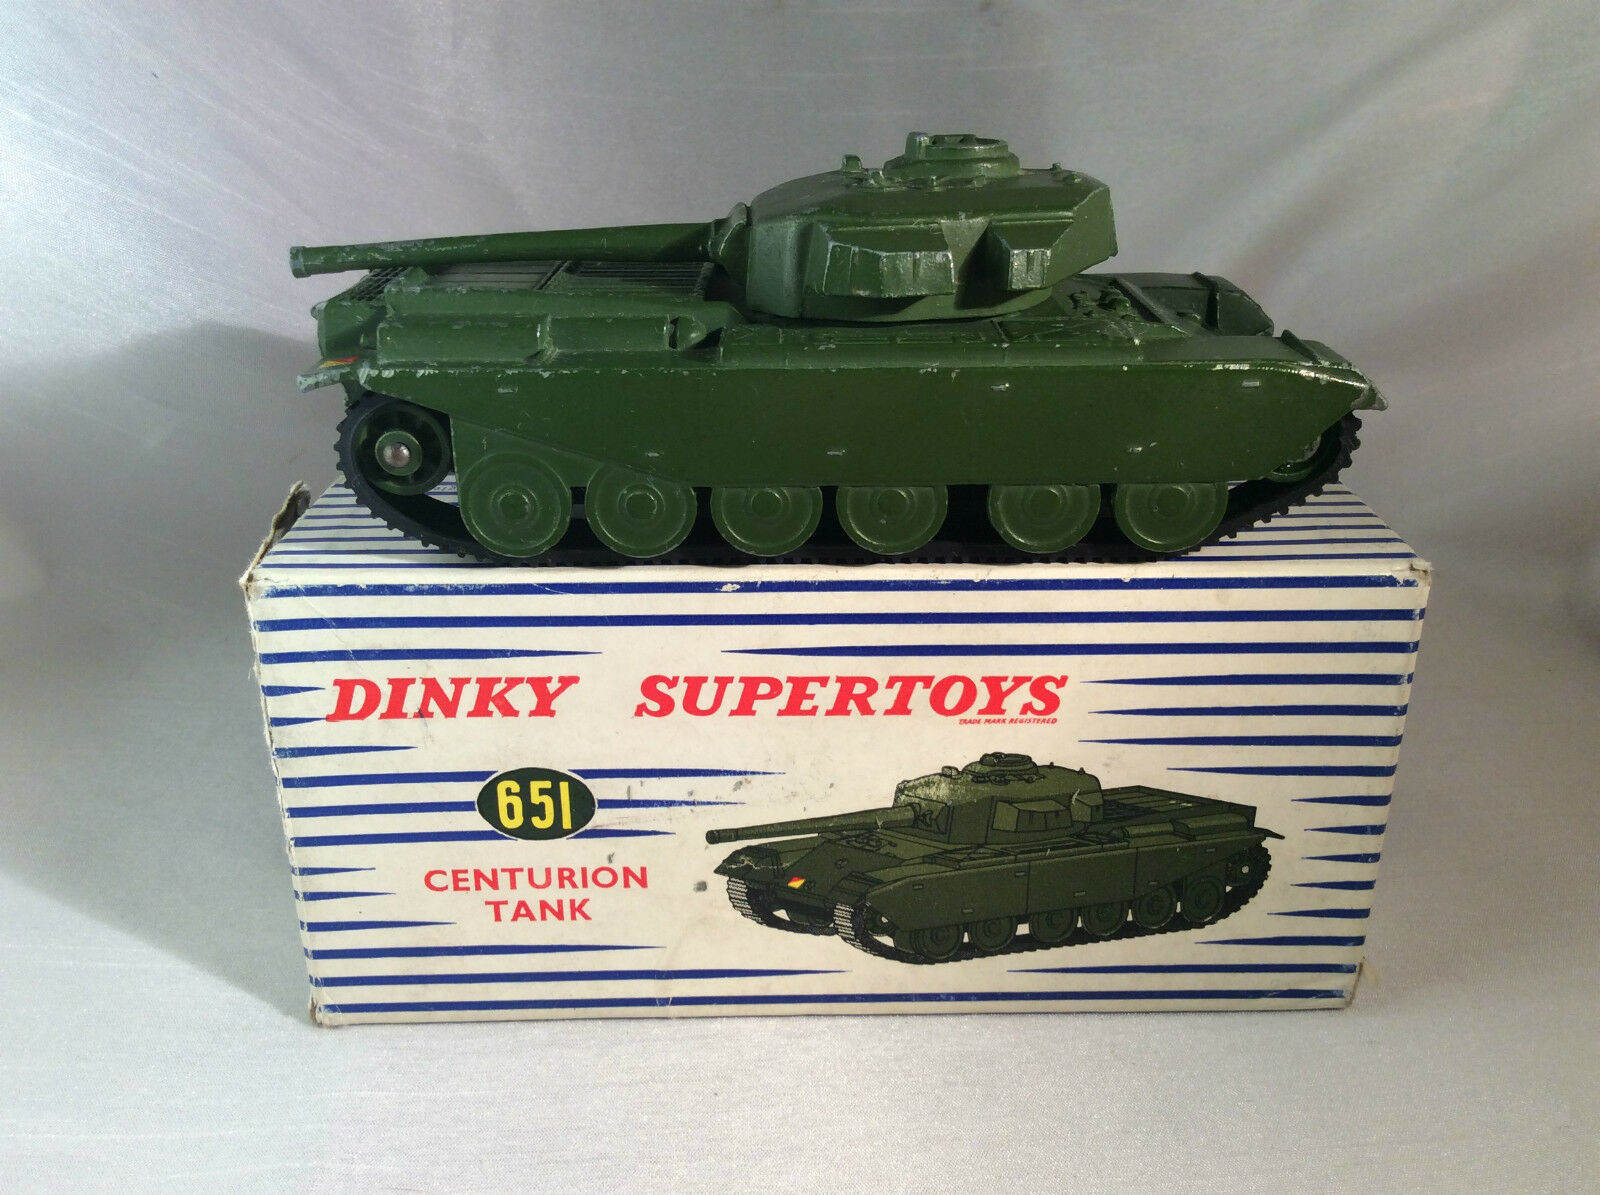 Dinky Spielzeugs SuperSpielzeugs no. 651 Centurion Tank Militairy ovp